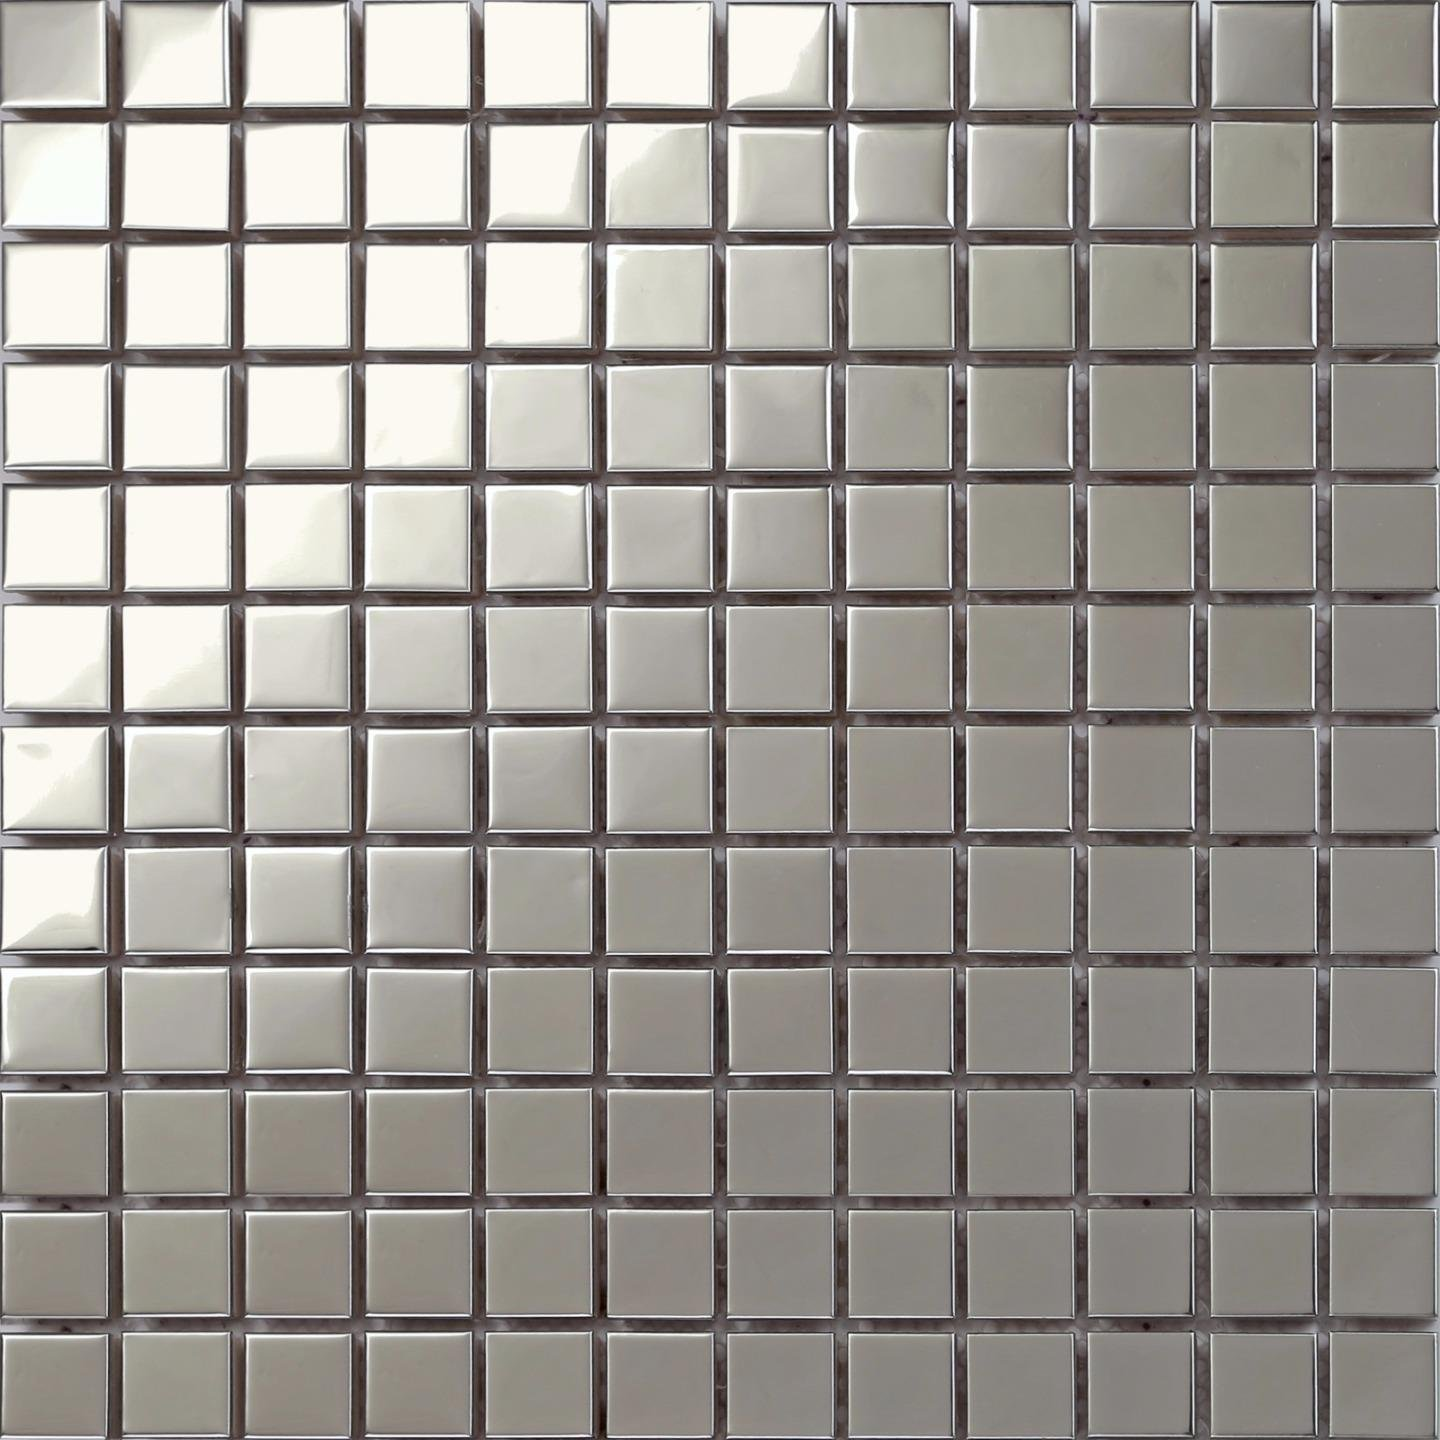 Grand Taps Polished Stainless Steel Mosaic Wall Tiles (MT0130) (11 Sheets)